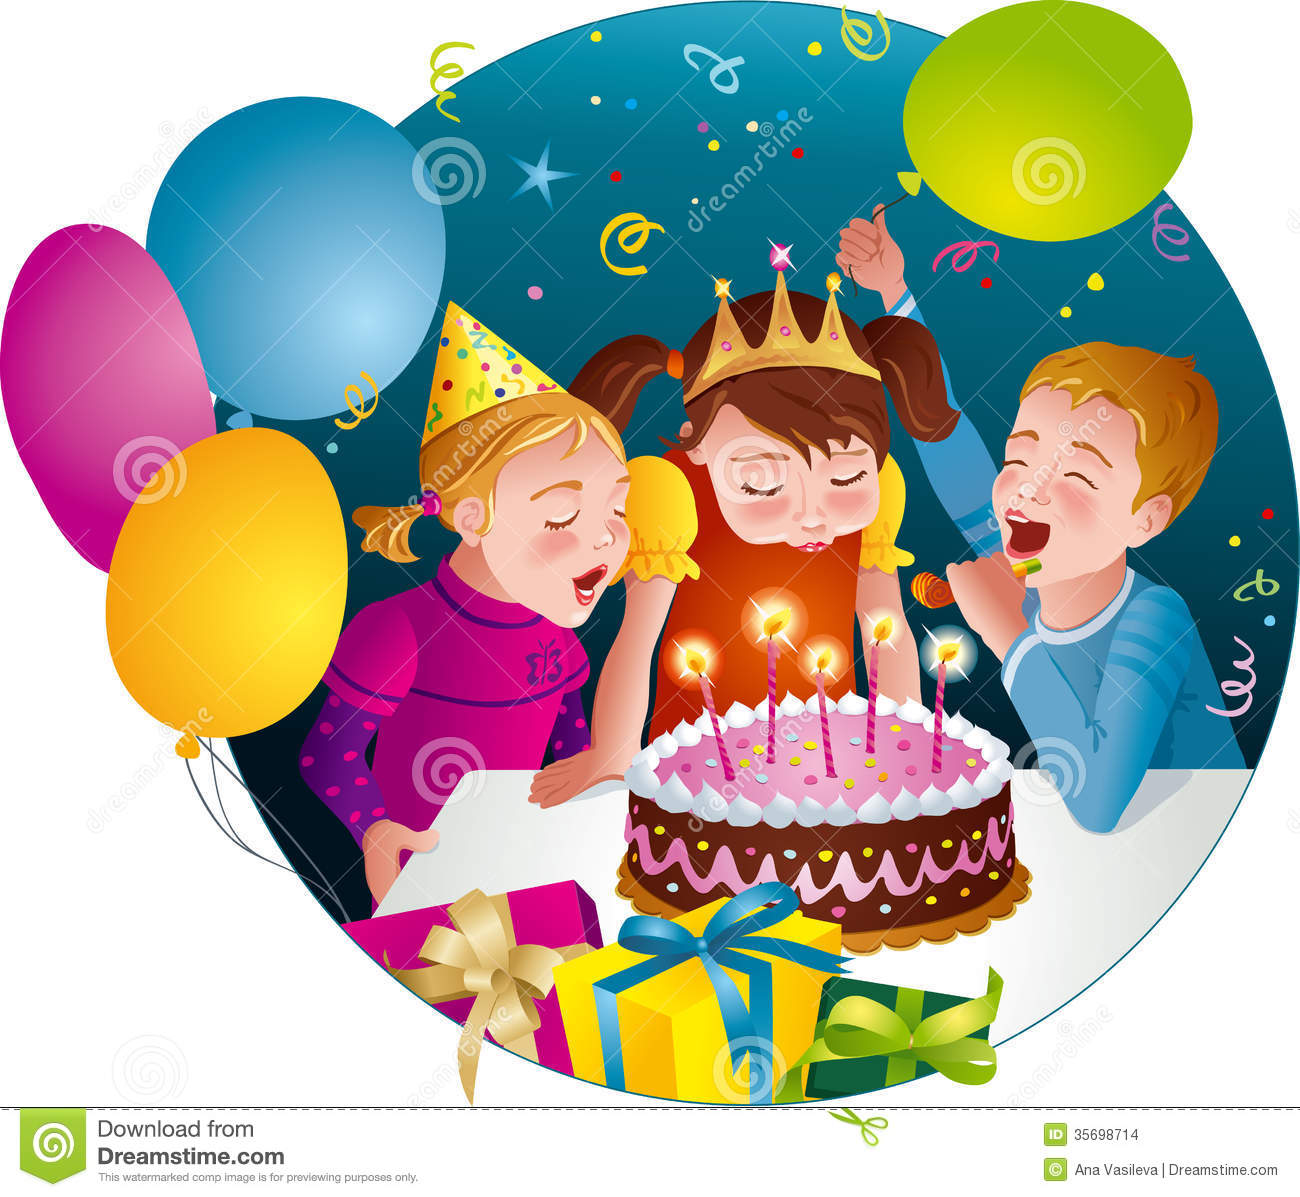 Happy birthday party clipart - ClipartFest